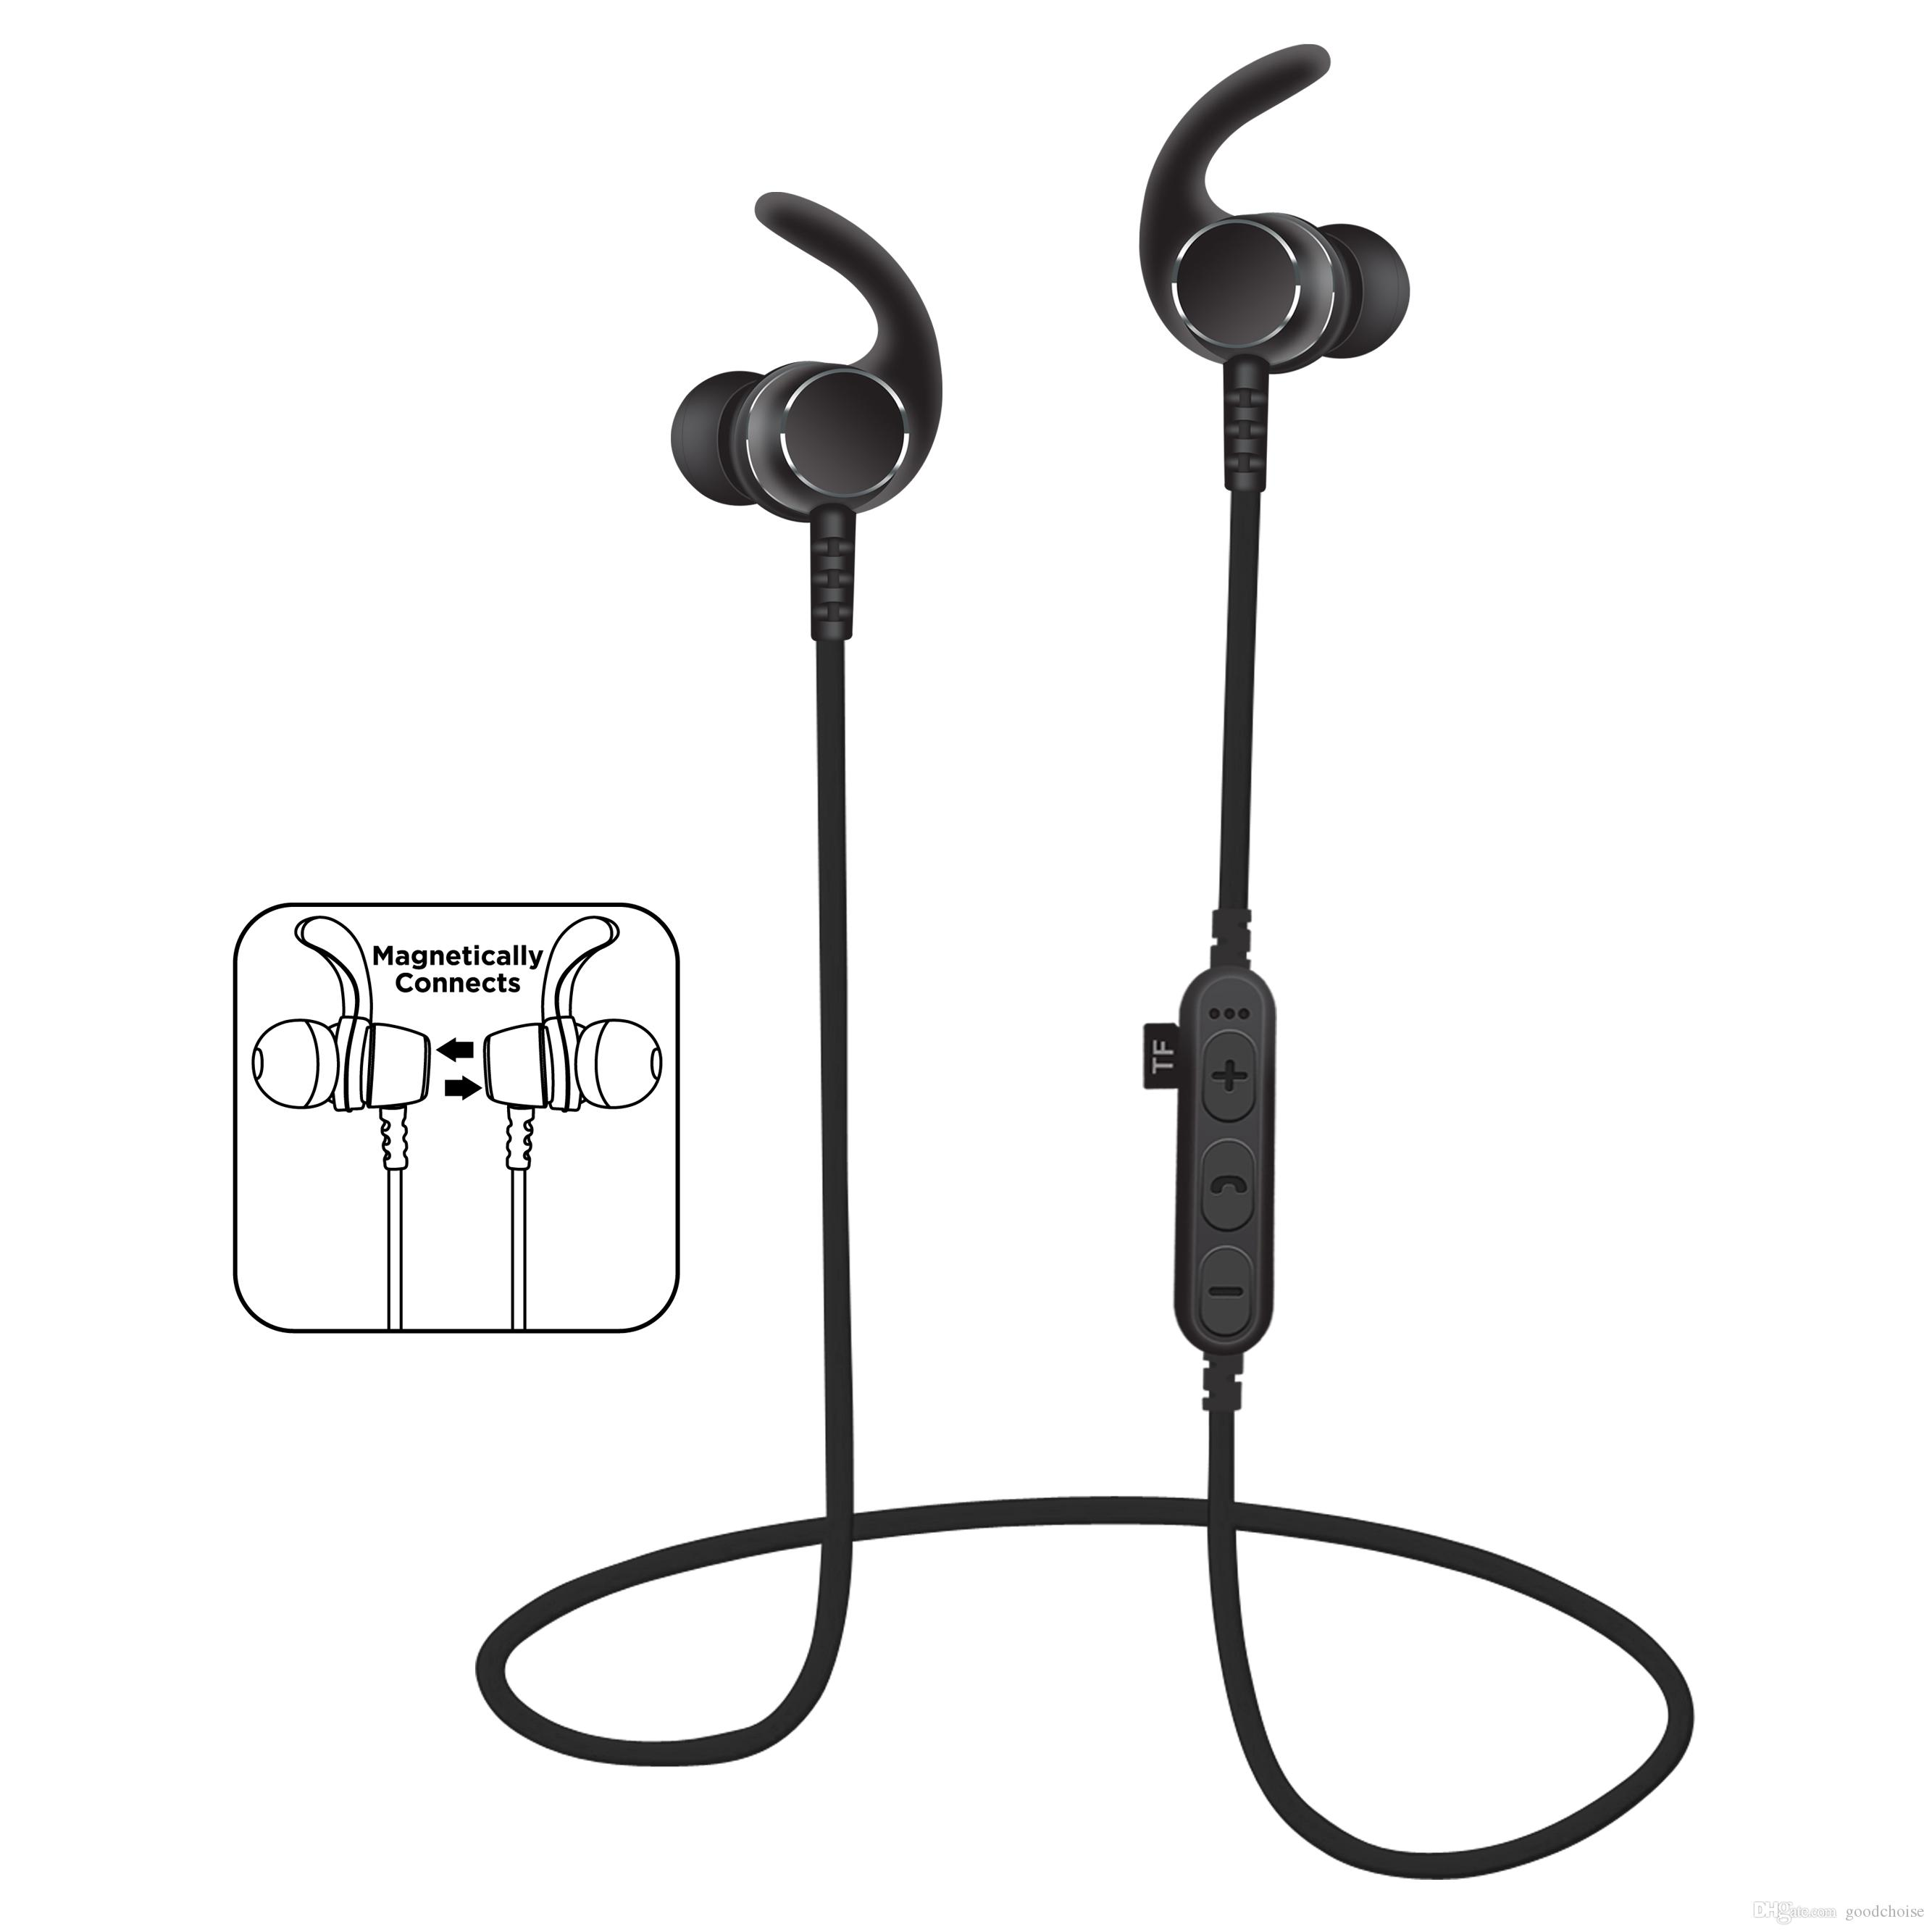 MS-T3 Magnetic sport Wireless Bluetooth headset earphones earbuds BT 4.2 headphones With Mic MP3 Stereo For smart phone